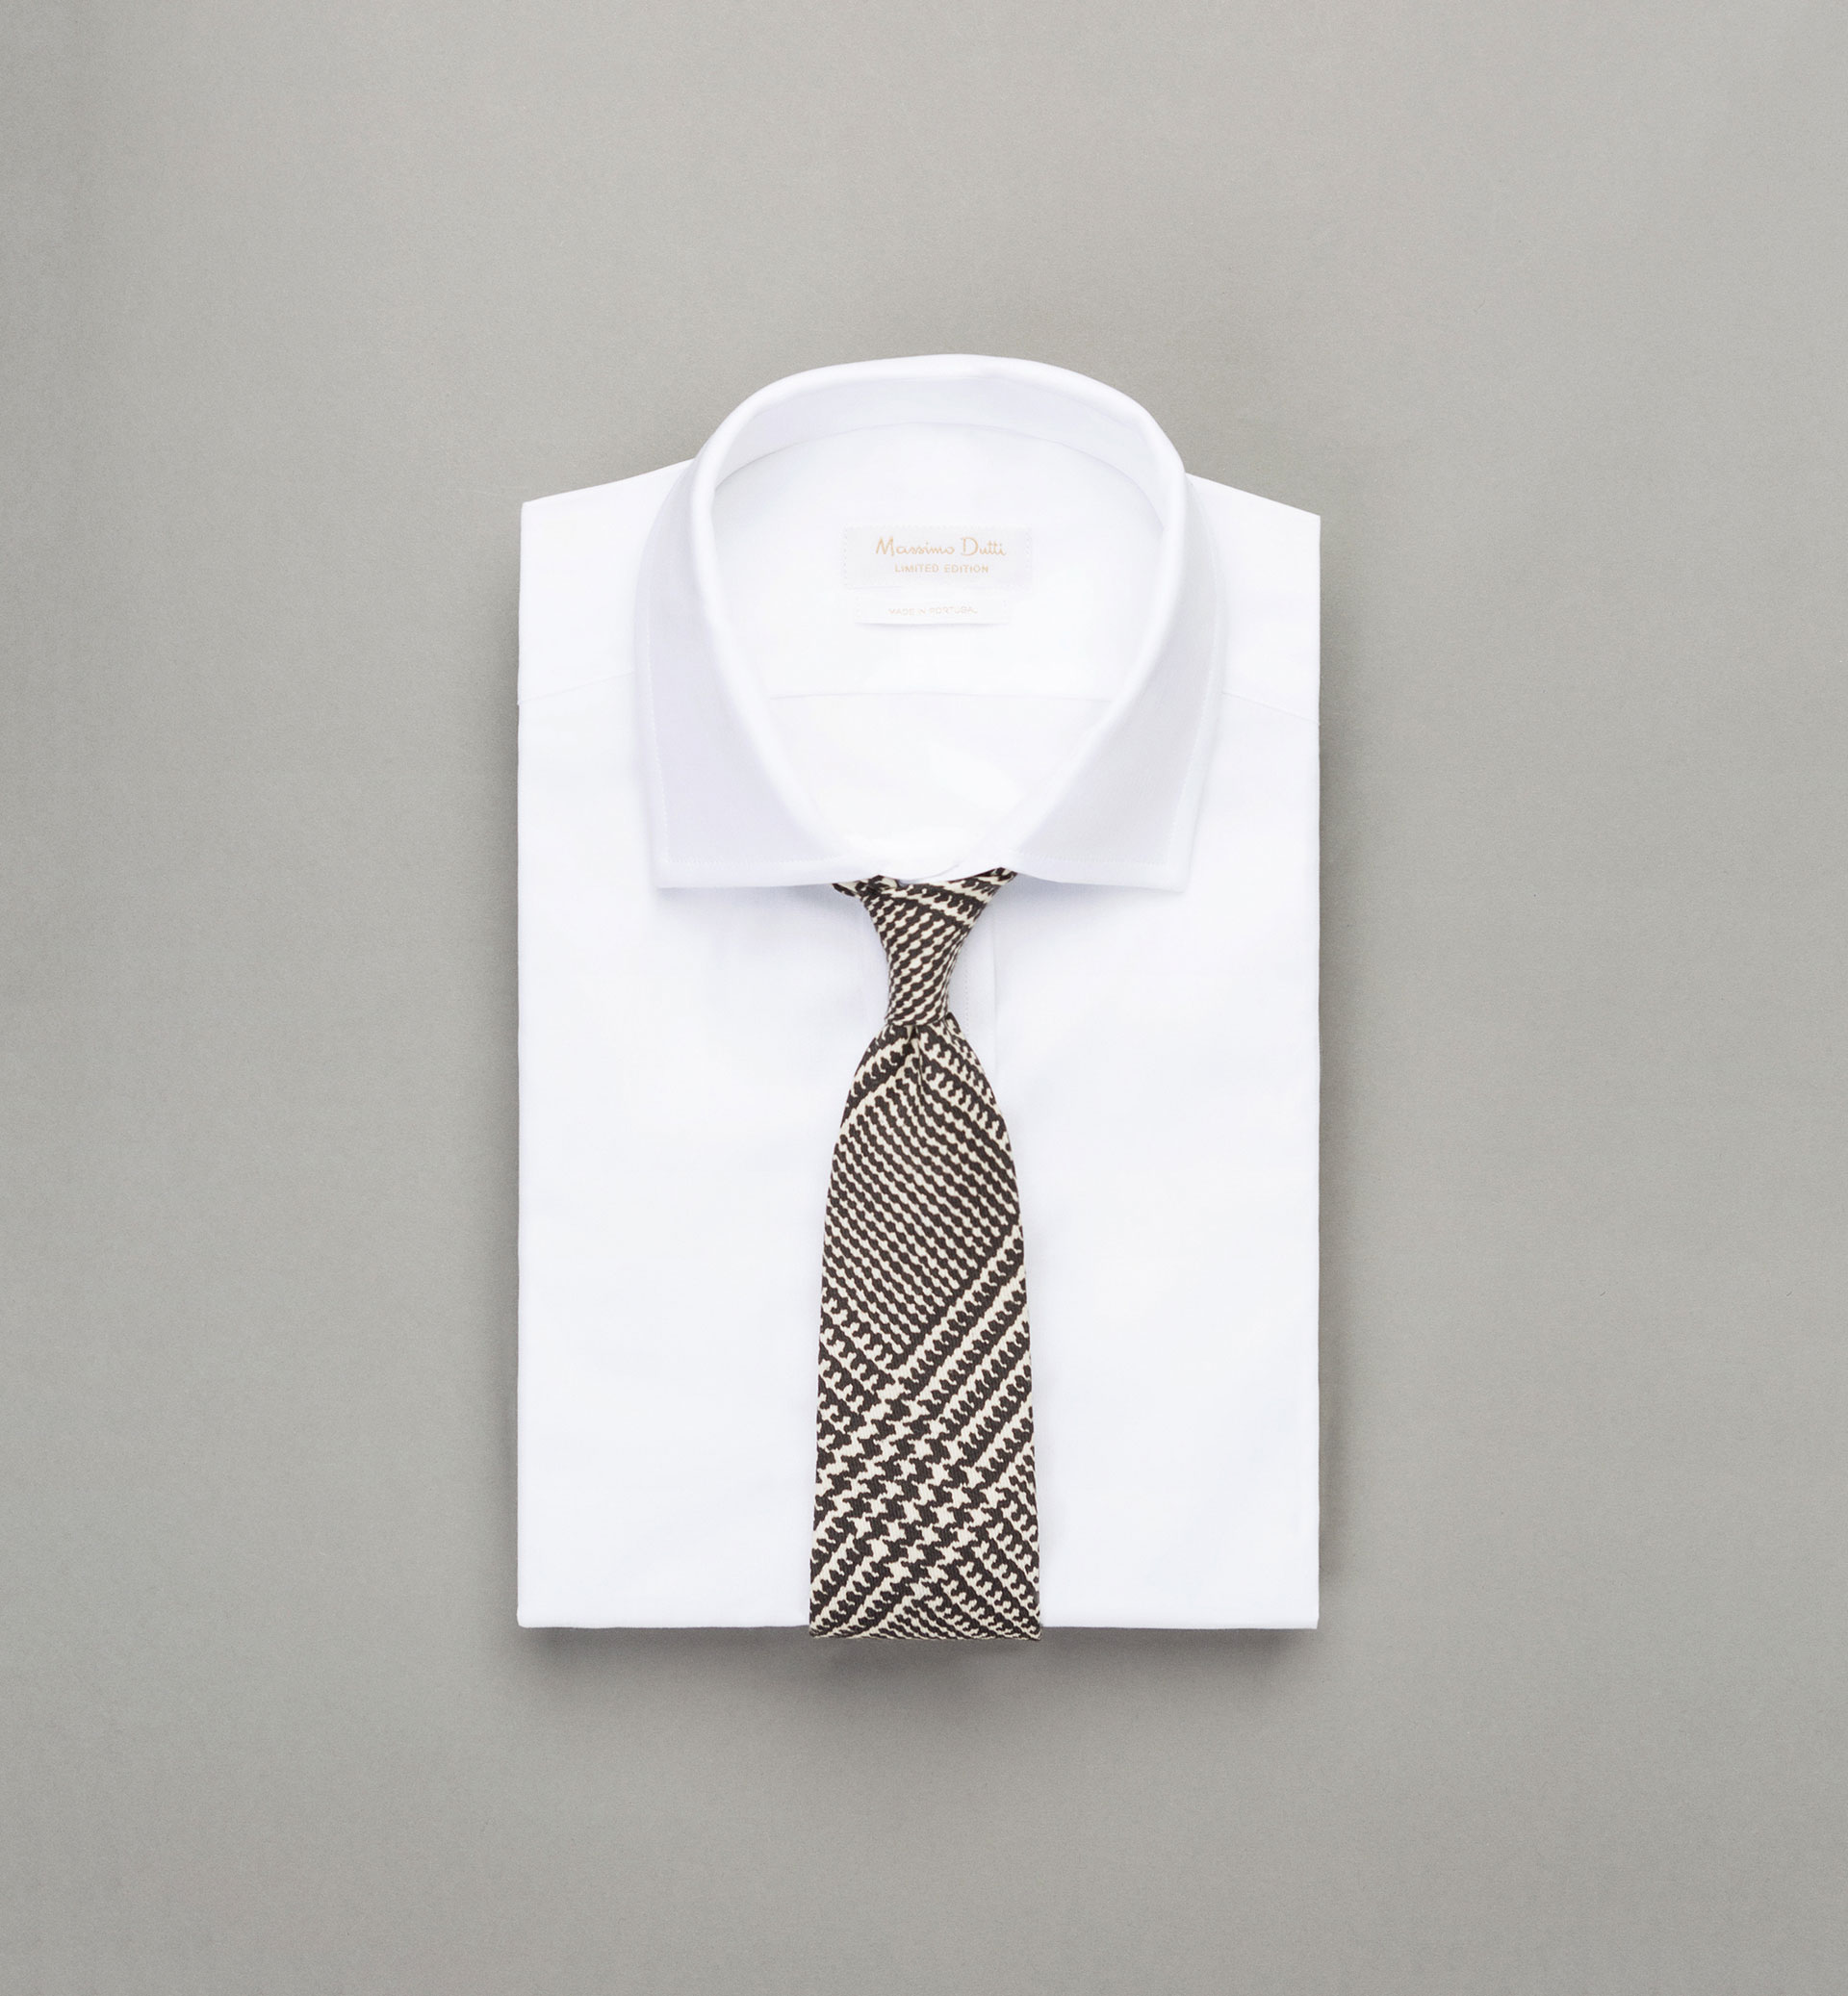 PERSONAL TAILORING HOUNDSTOOTH TIE